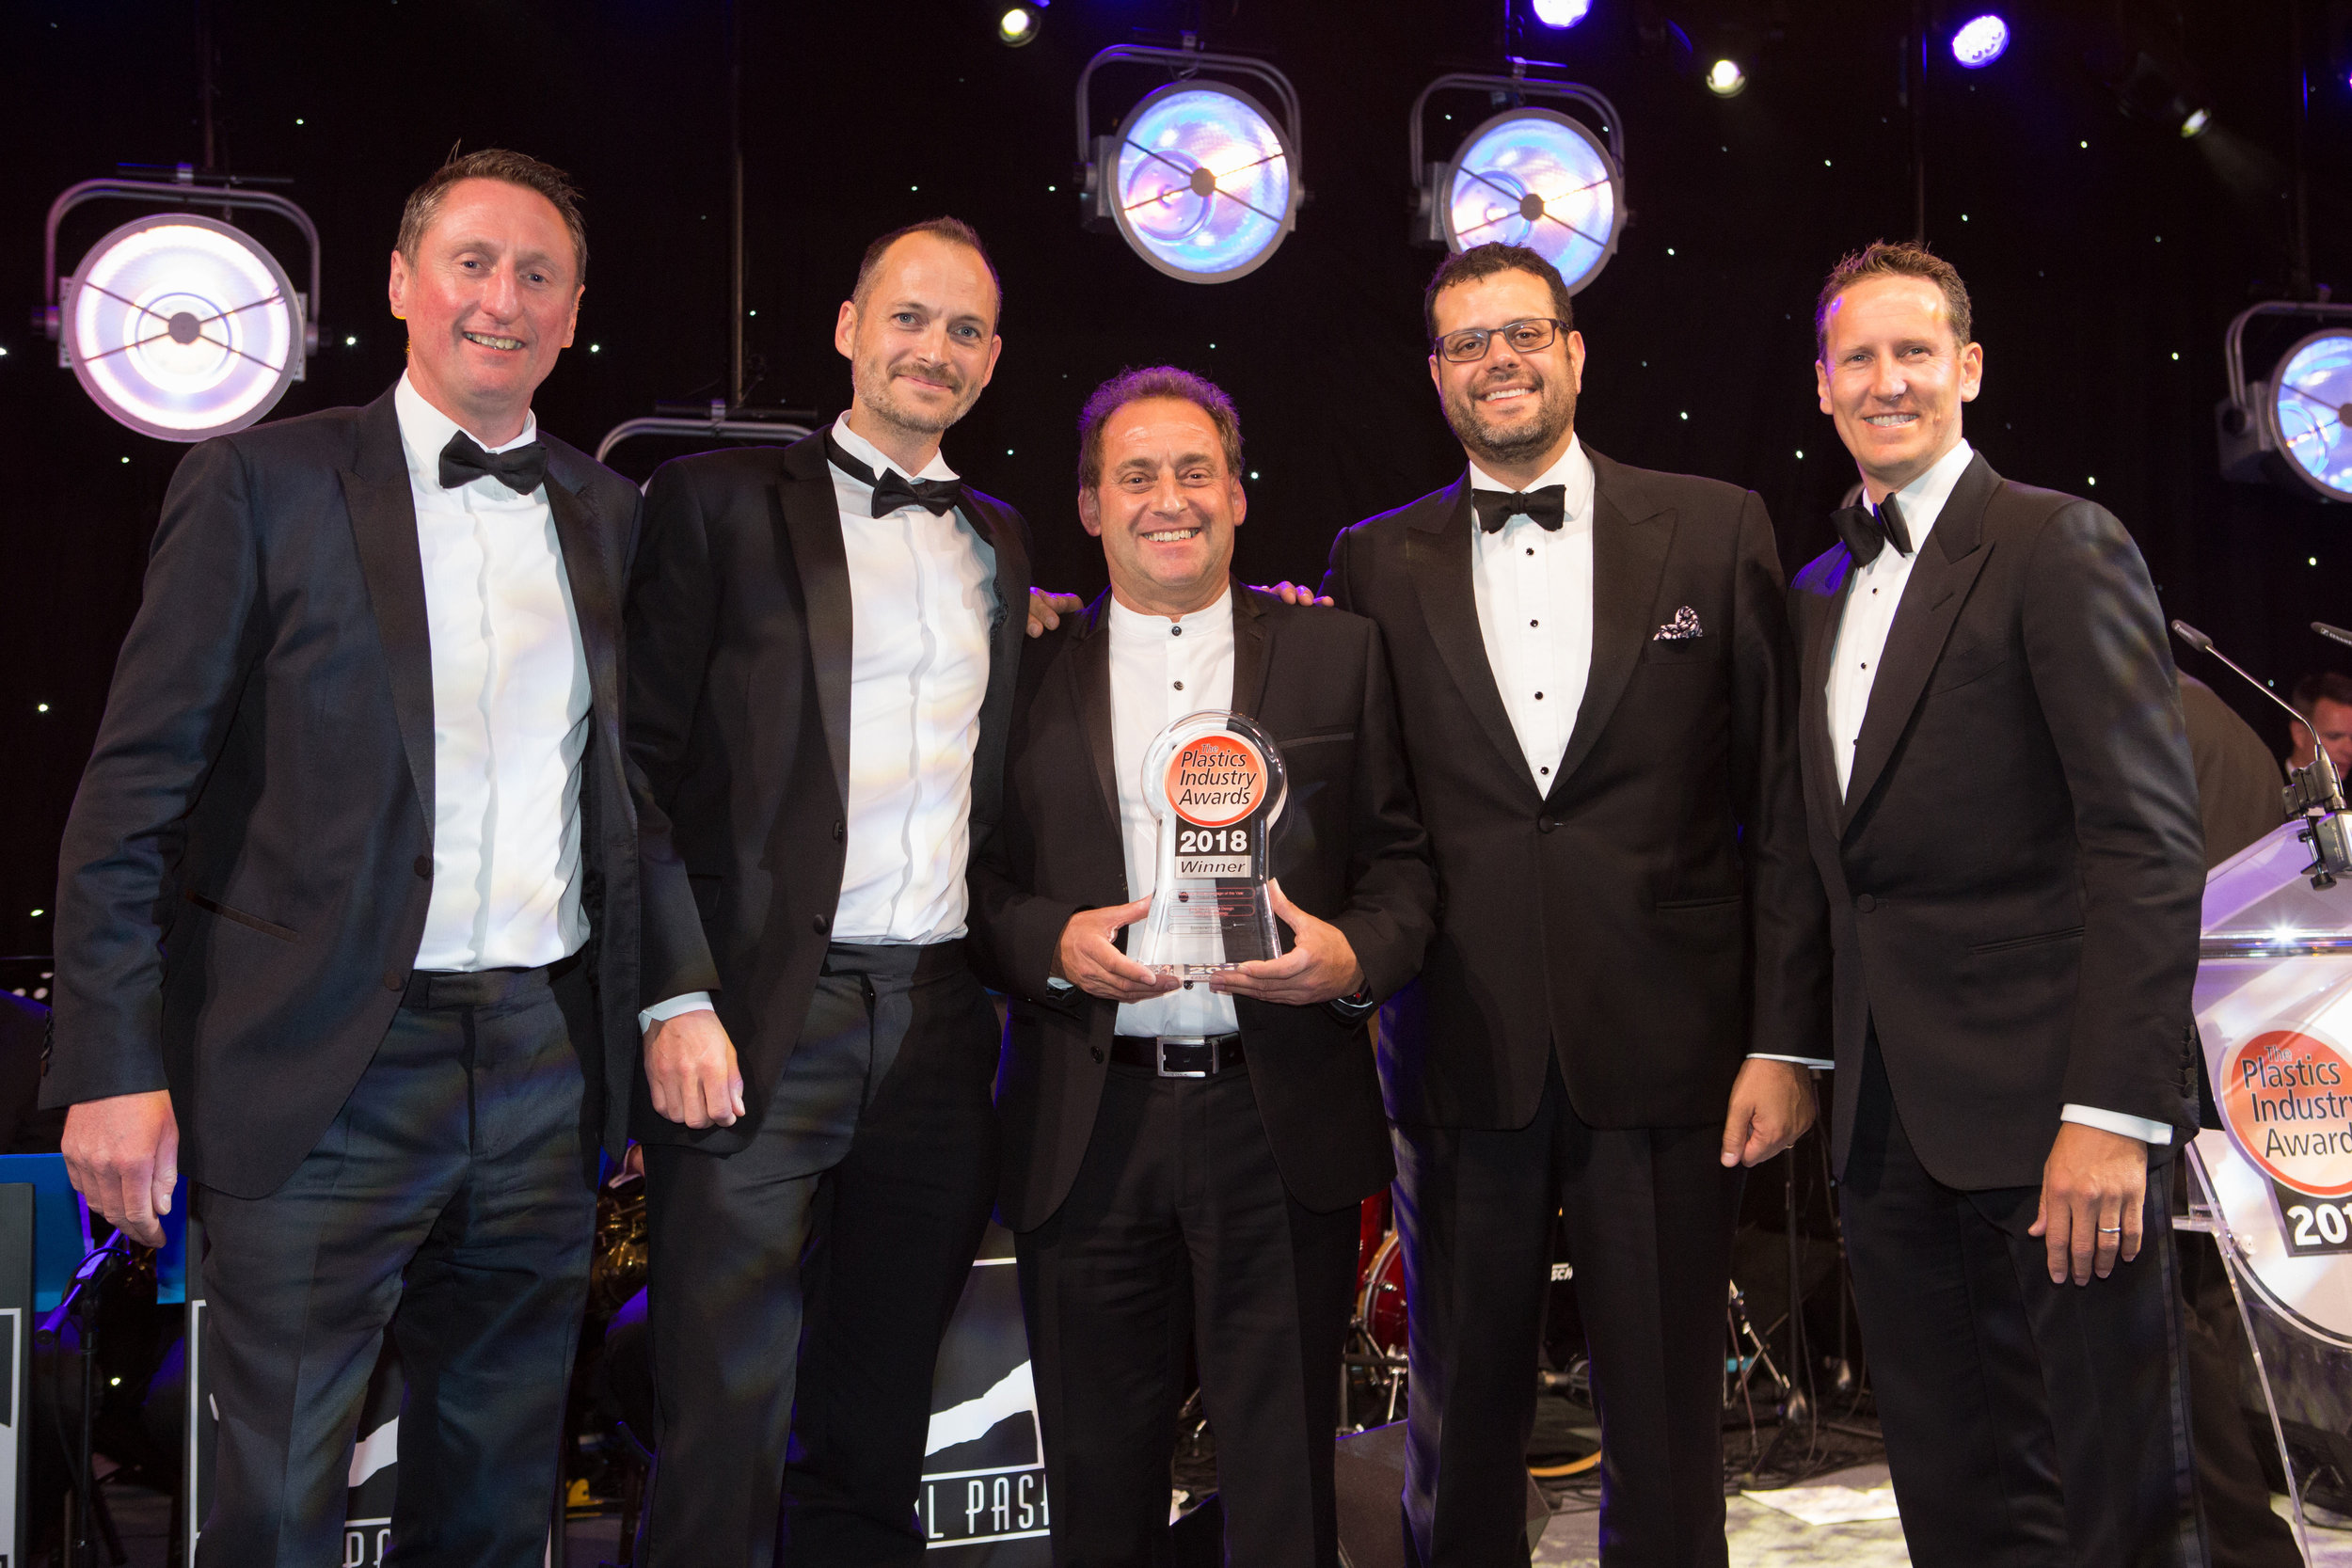 Smallfry CEO, Steve May-Russell With Dave Spurling and John E.Milad from Quanta Dialysis Technology receiving the Plastic Industry Award from ex Strictly Professional Dancer Brendan Cole